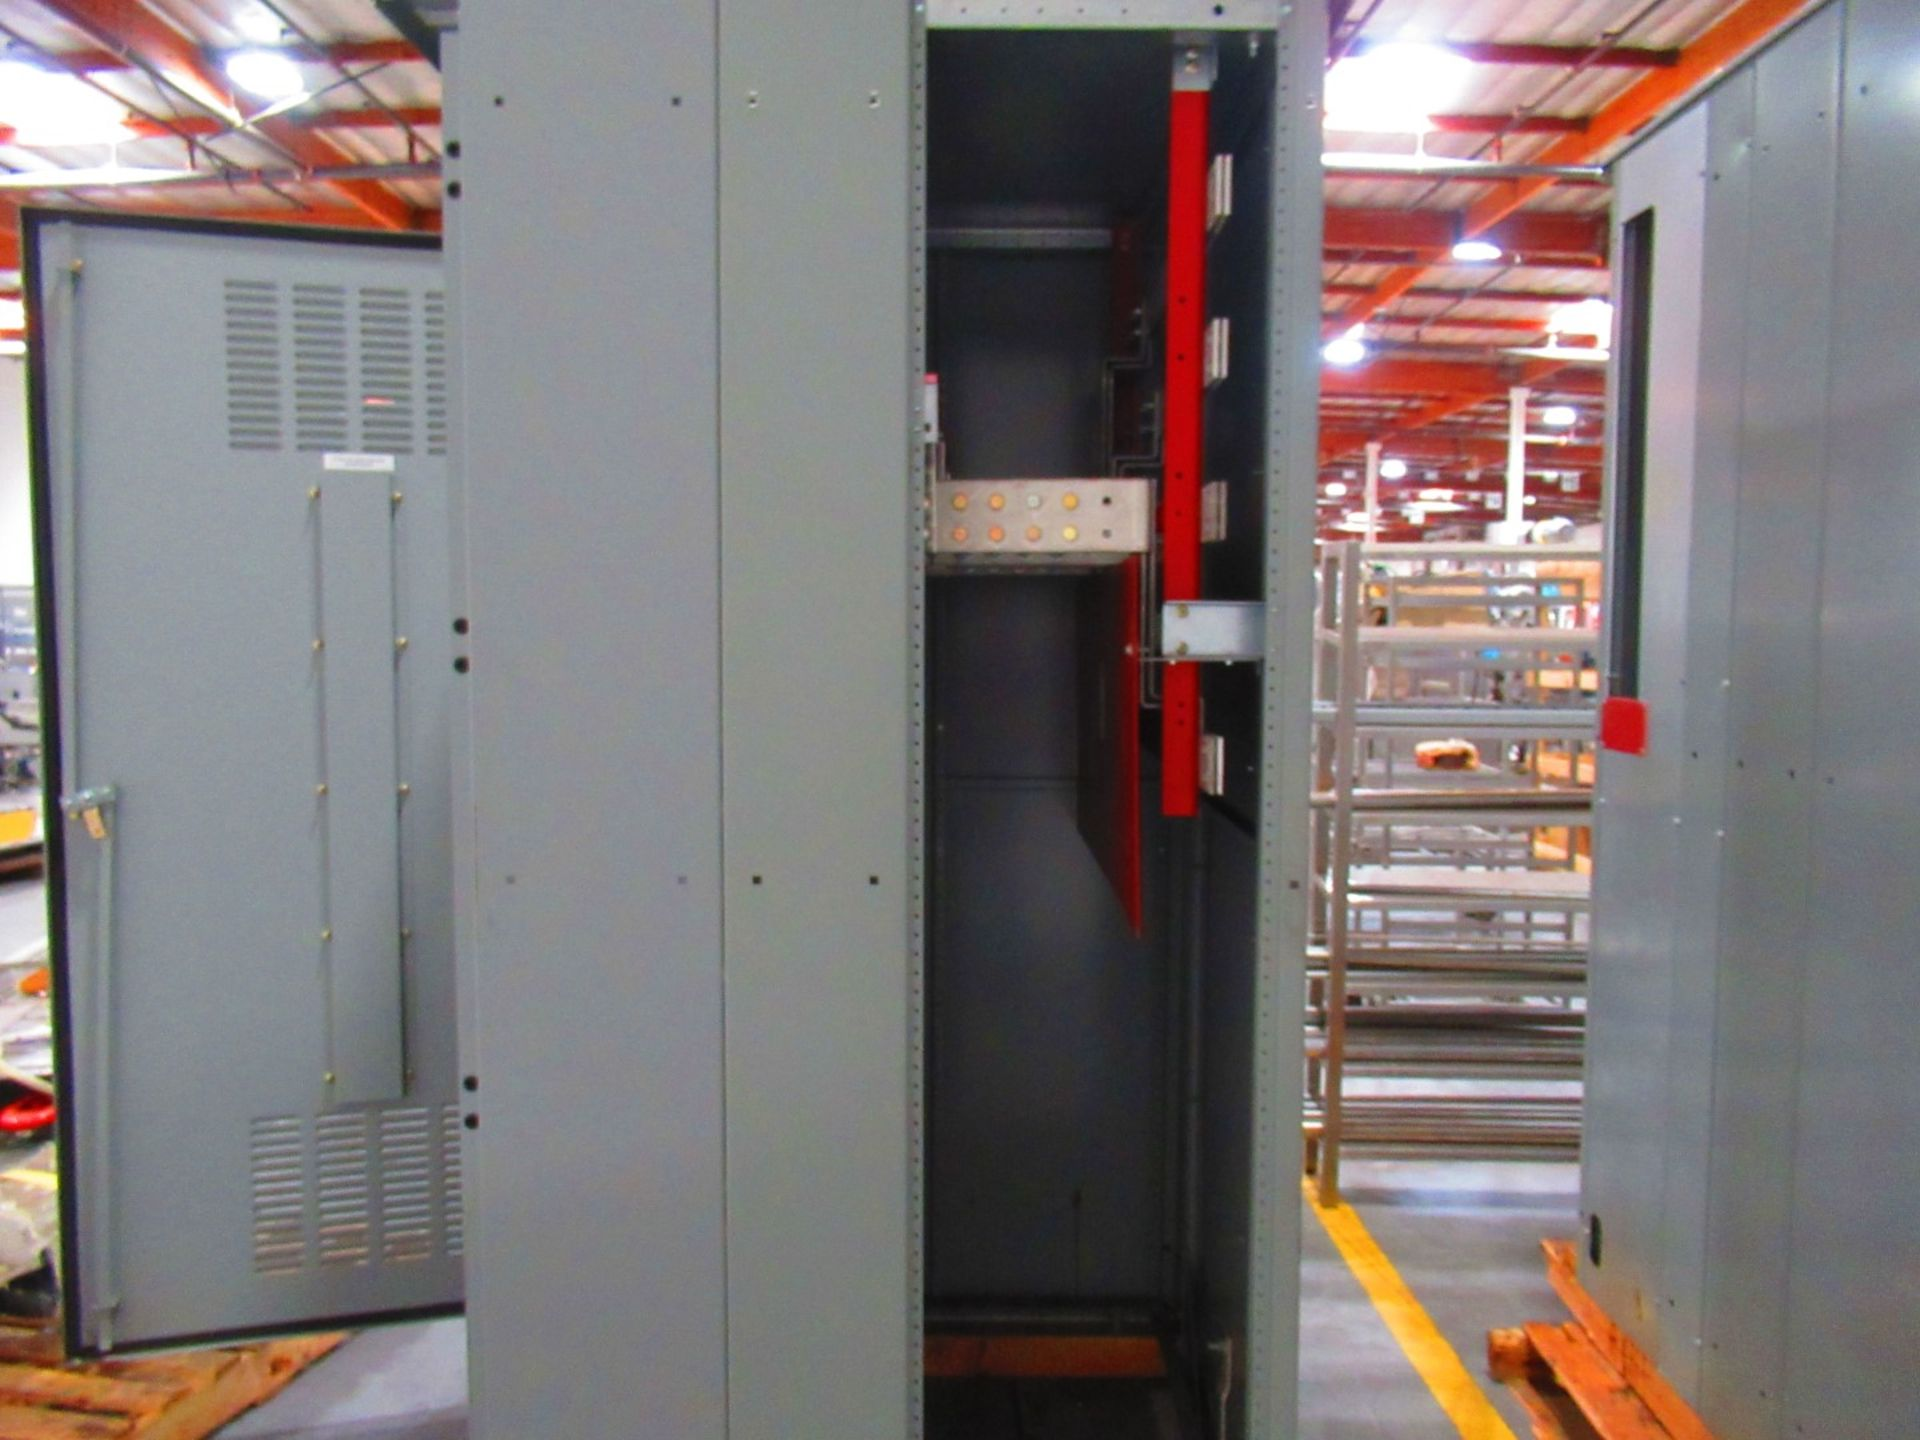 General Distribution Switchboard Cabinet Unit - Image 3 of 5